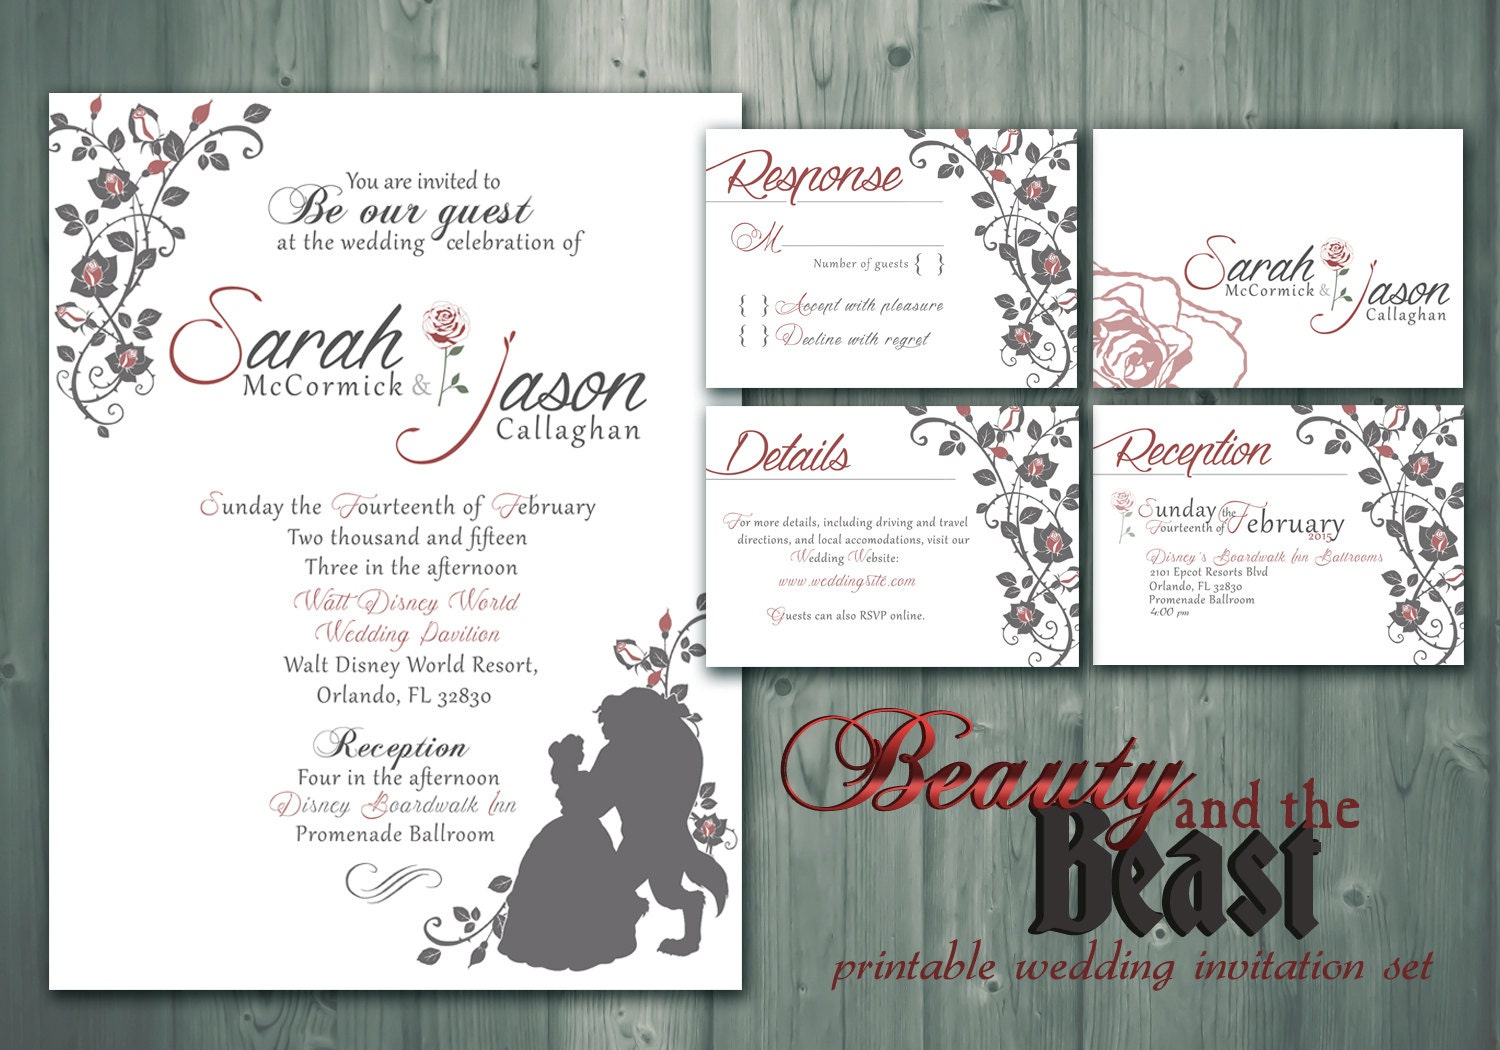 Beauty and the beast printable wedding invitation rsvp for Beauty and the beast wedding invitation template free